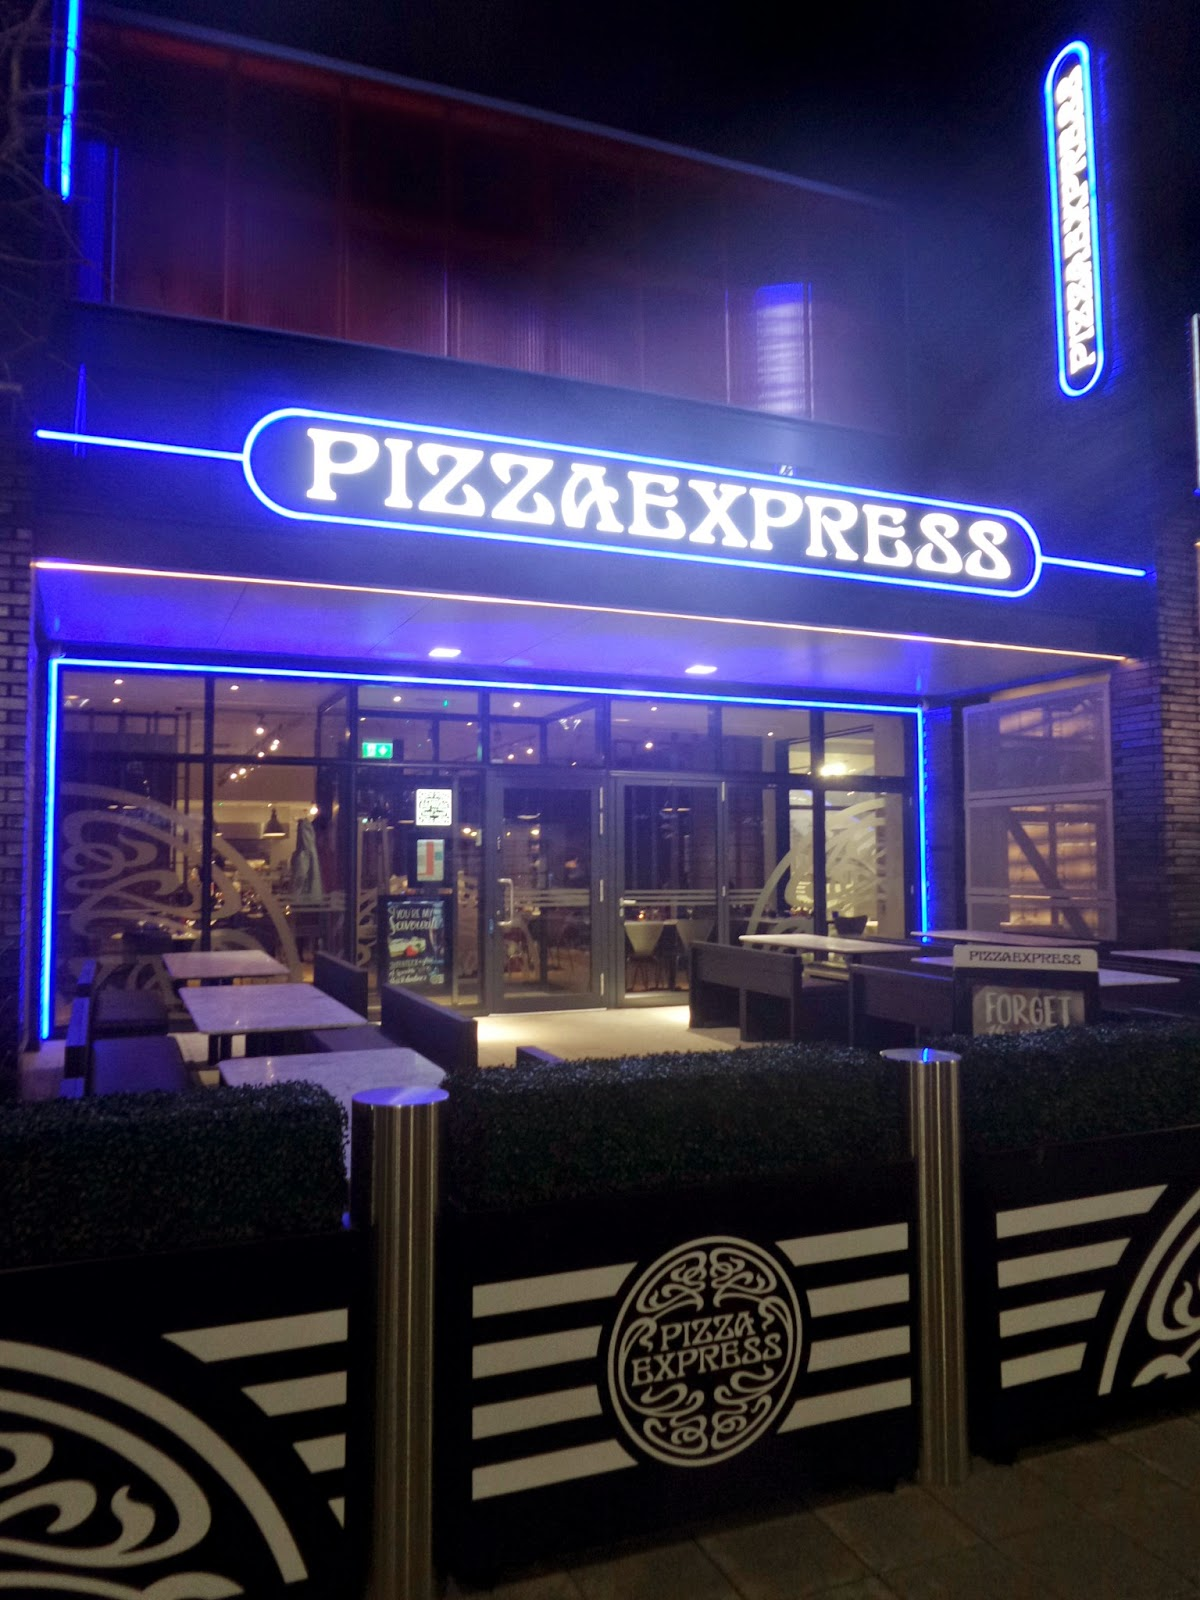 Pizza Express, where the children paid for our meall